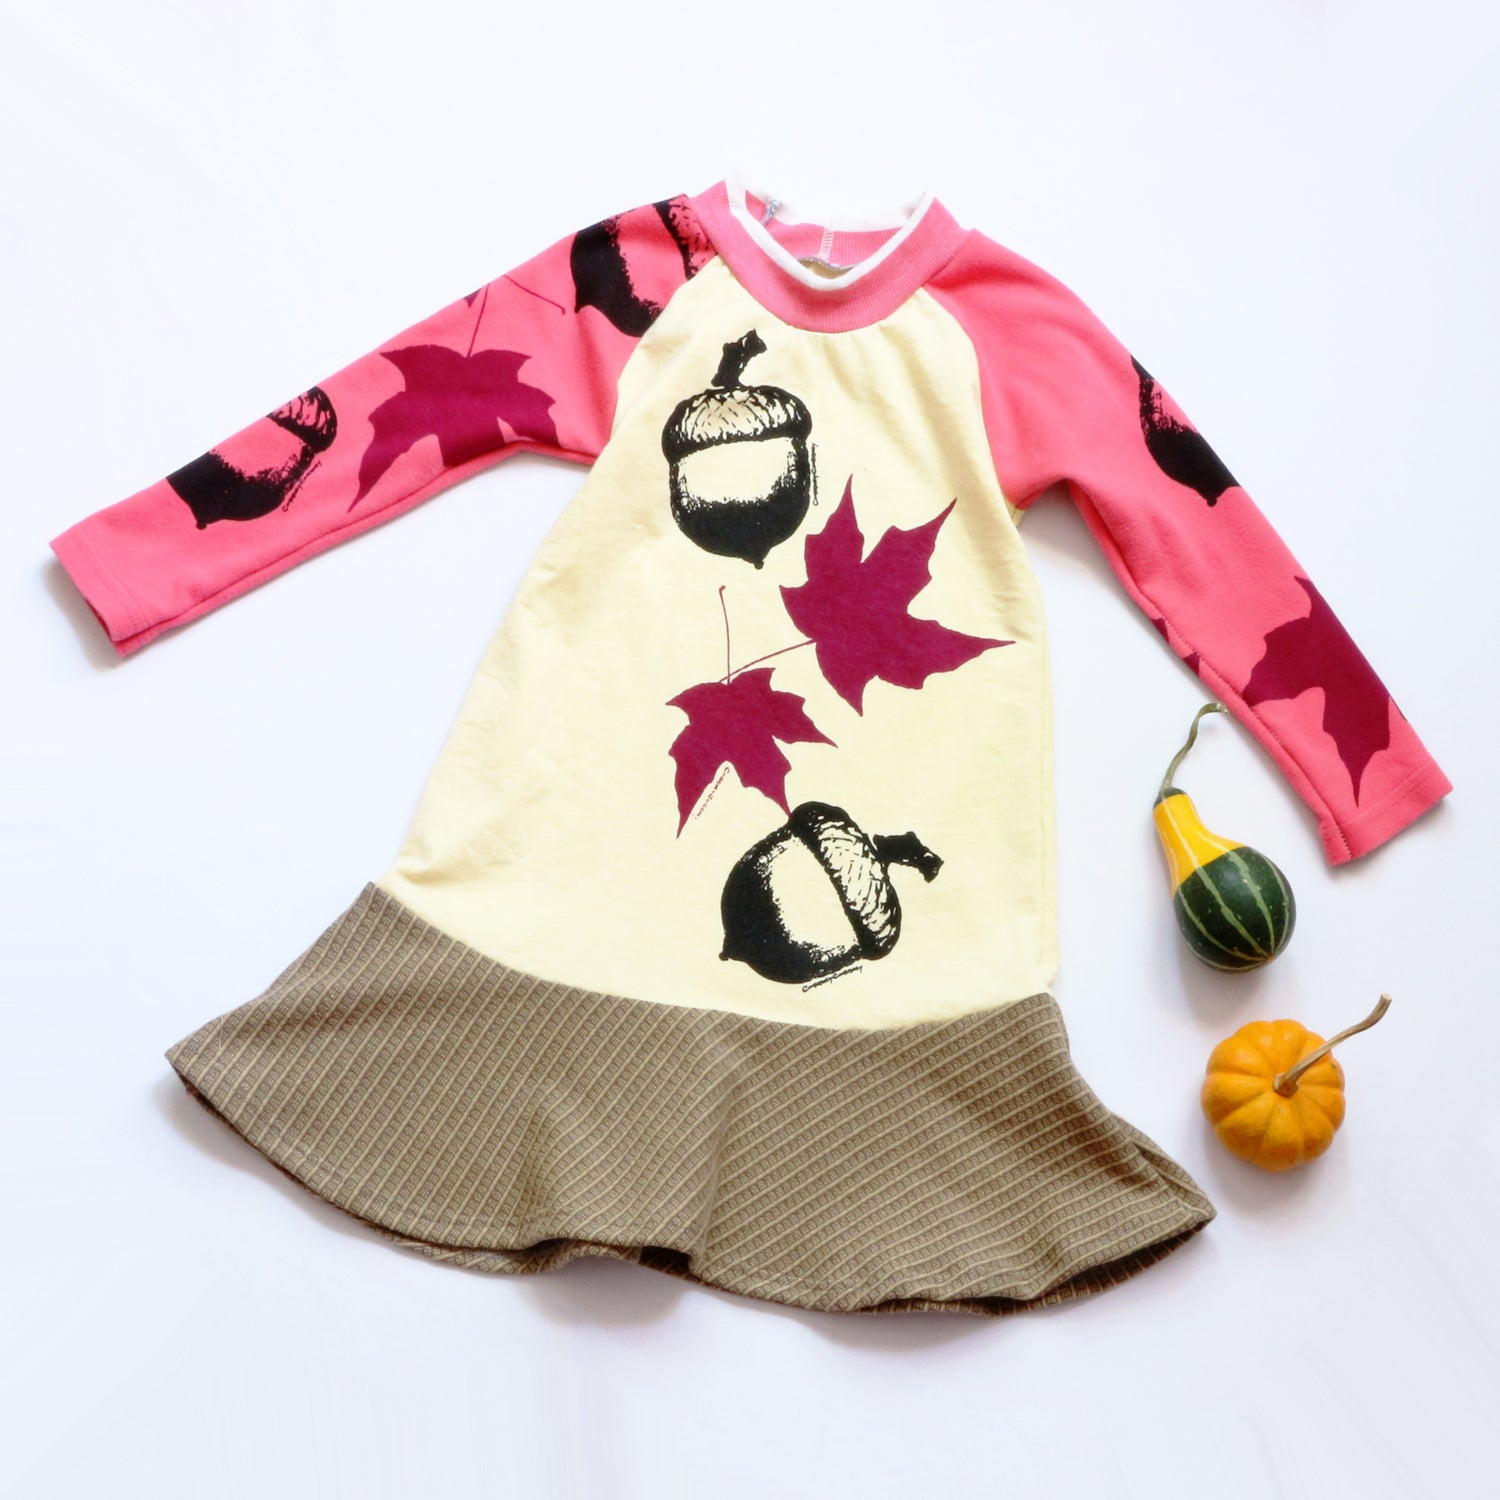 Image of pink sky autumn 4T yellow fall falltime acorn maple leaf leaves handprinted courtneycourtney dress